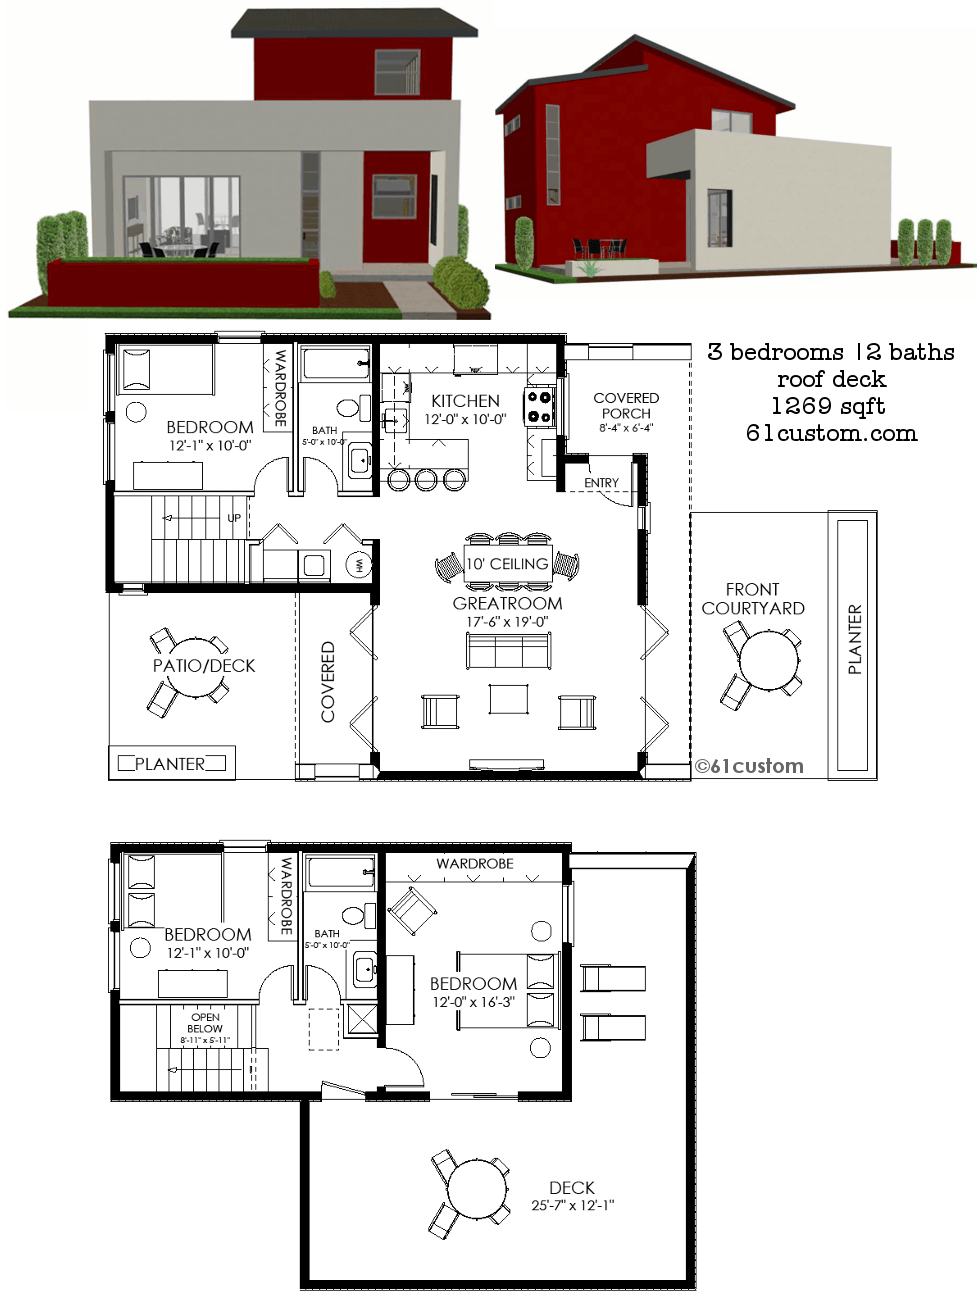 Contemporary Small House Plan 61custom Contemporary: small modern home floor plans